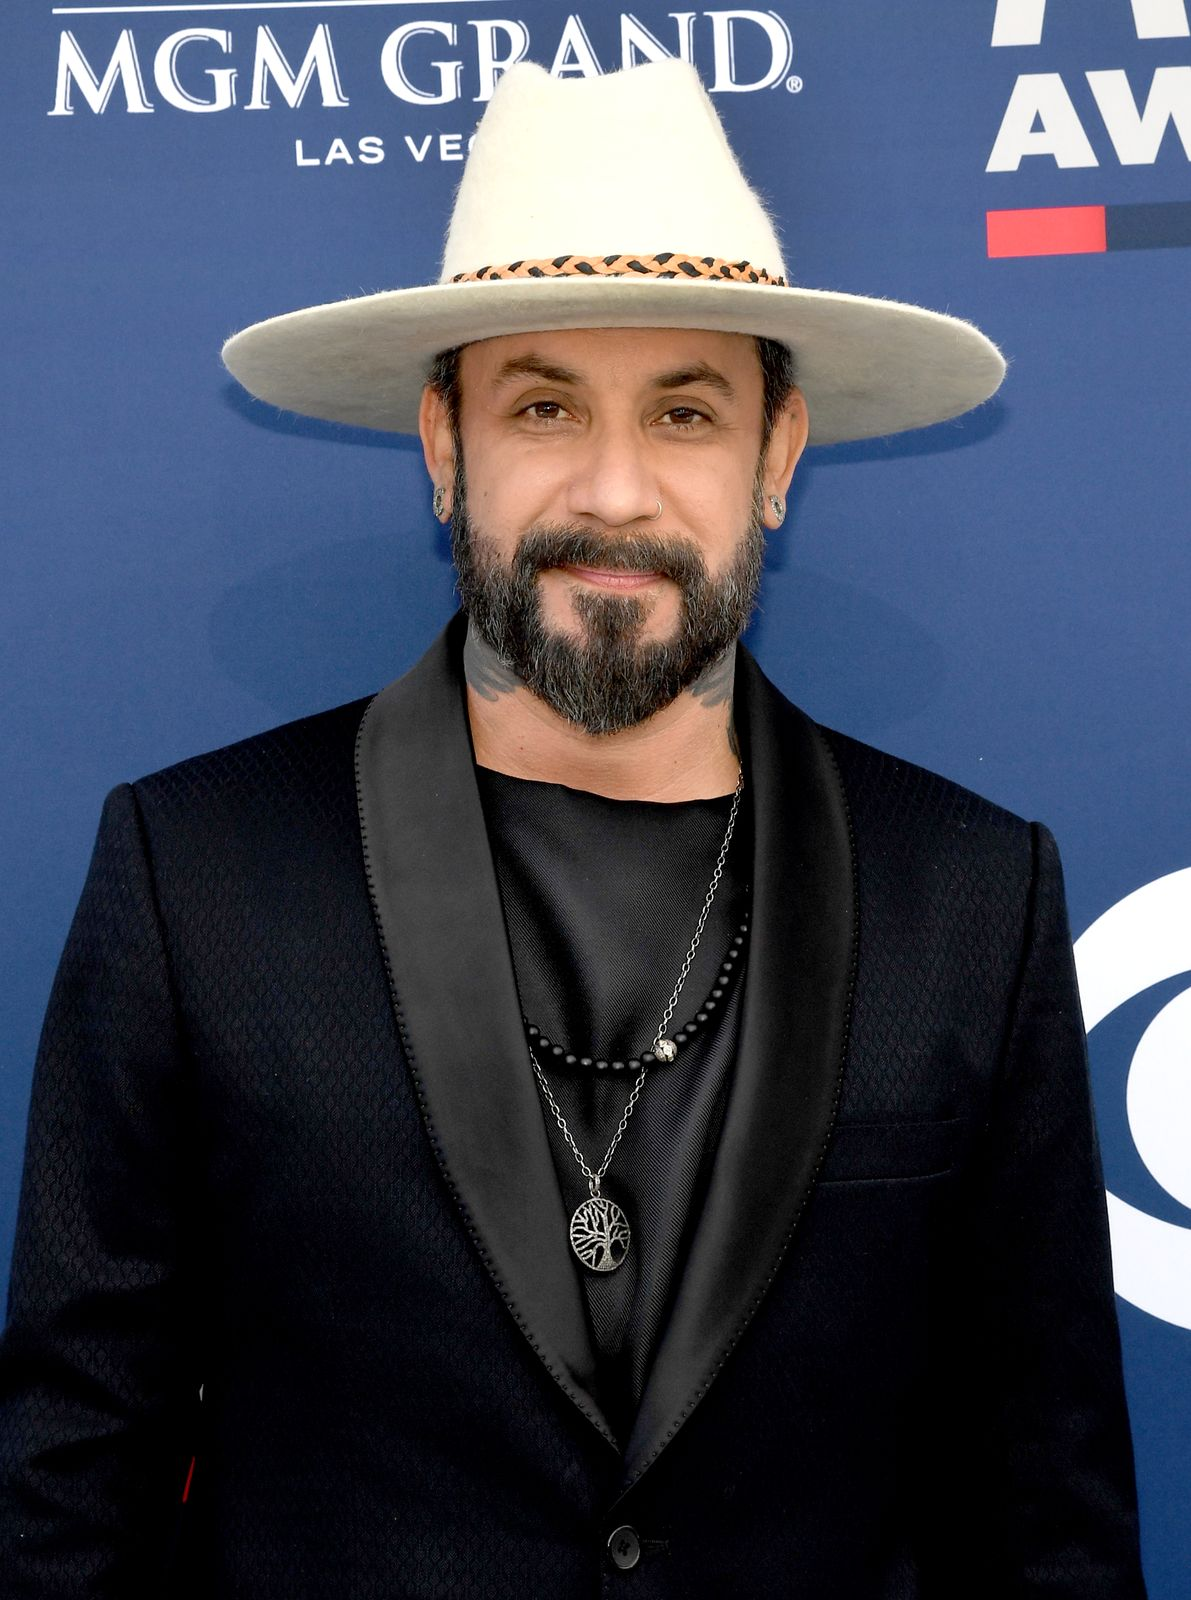 AJ McLean attends the 54th Academy Of Country Music Awards at MGM Grand Hotel & Casino on April 07, 2019 in Las Vegas, Nevada. | Photo: Getty Images.